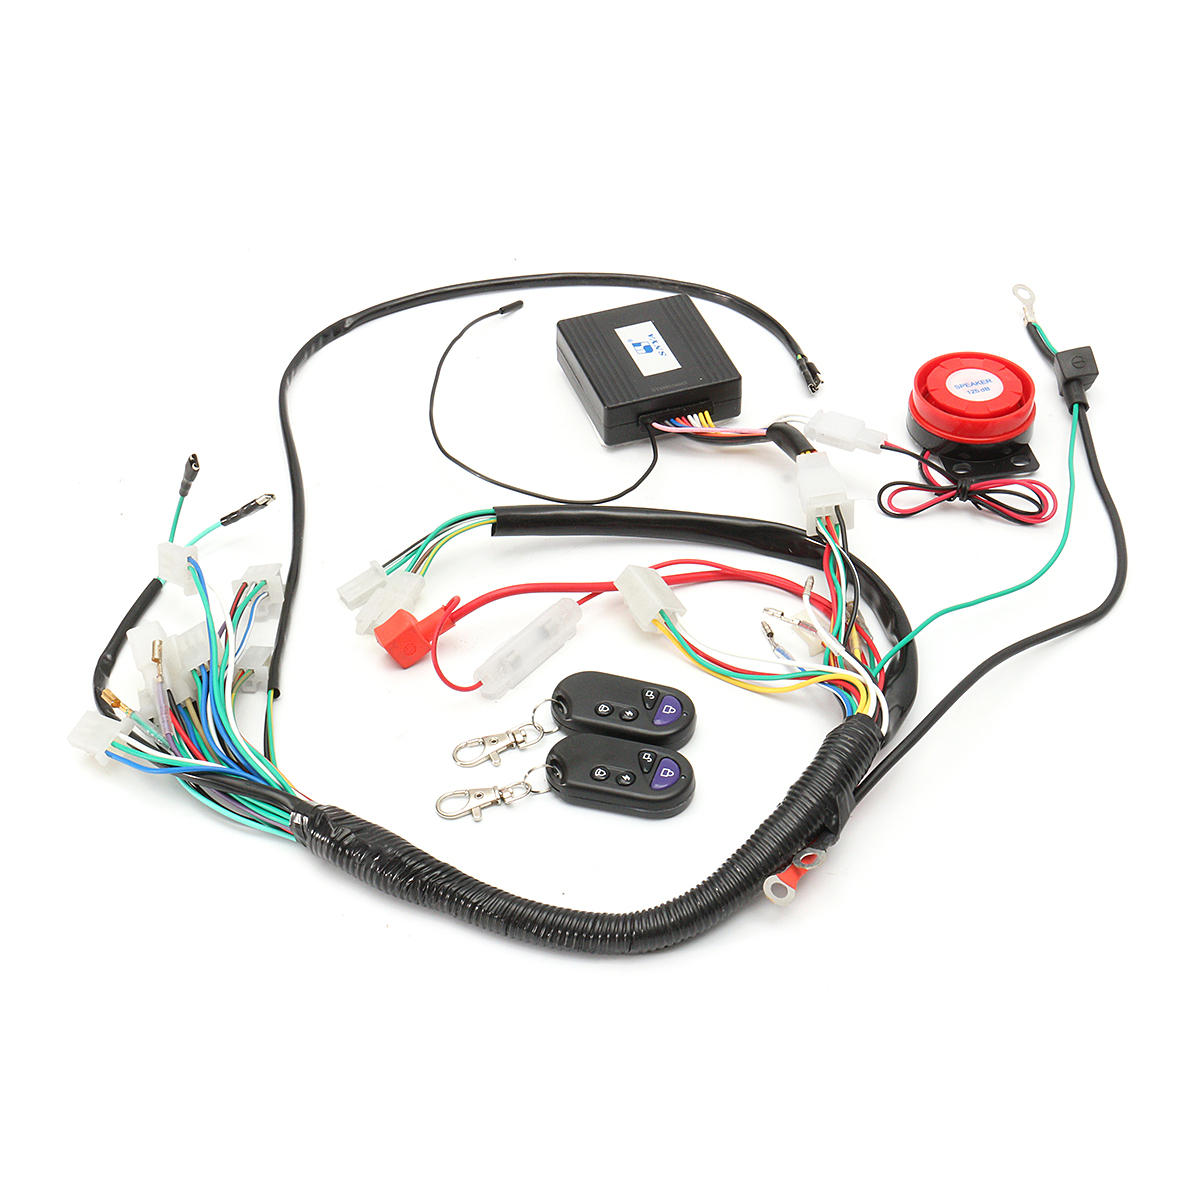 hight resolution of wiring harness start switch coil loom remote speaker 50cc 70cc 125cc 50cc atv wiring harness